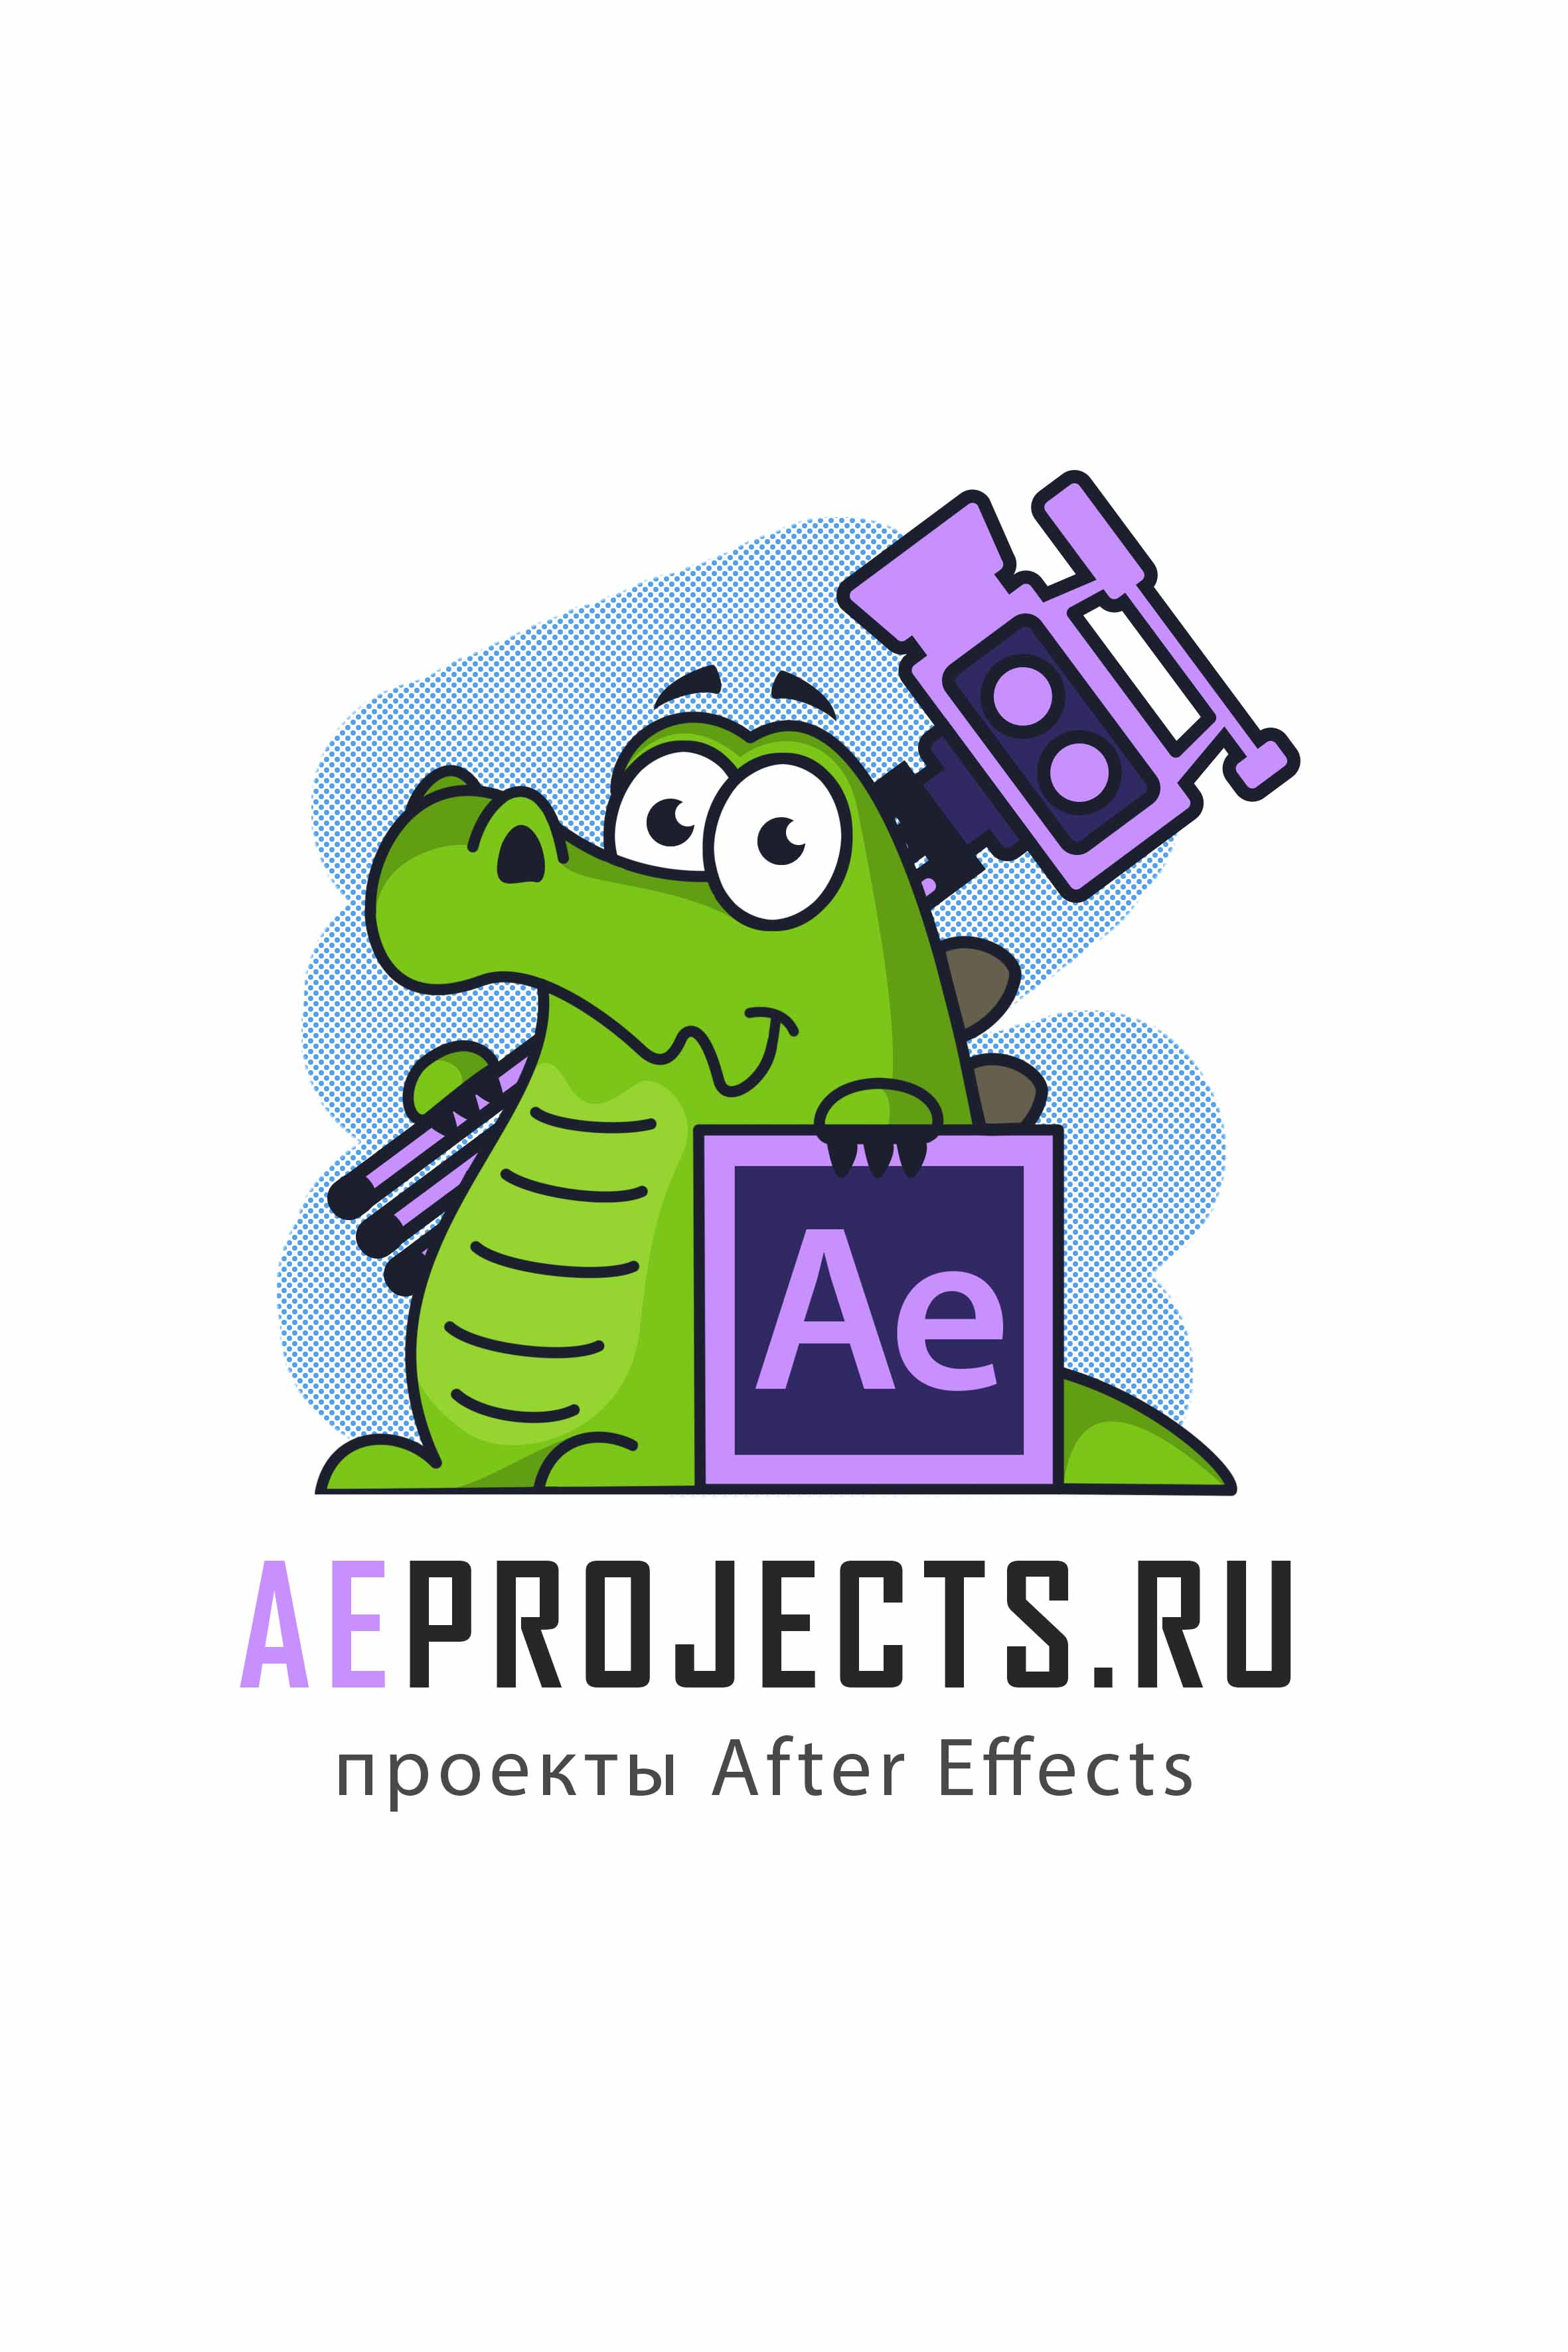 AEprojects